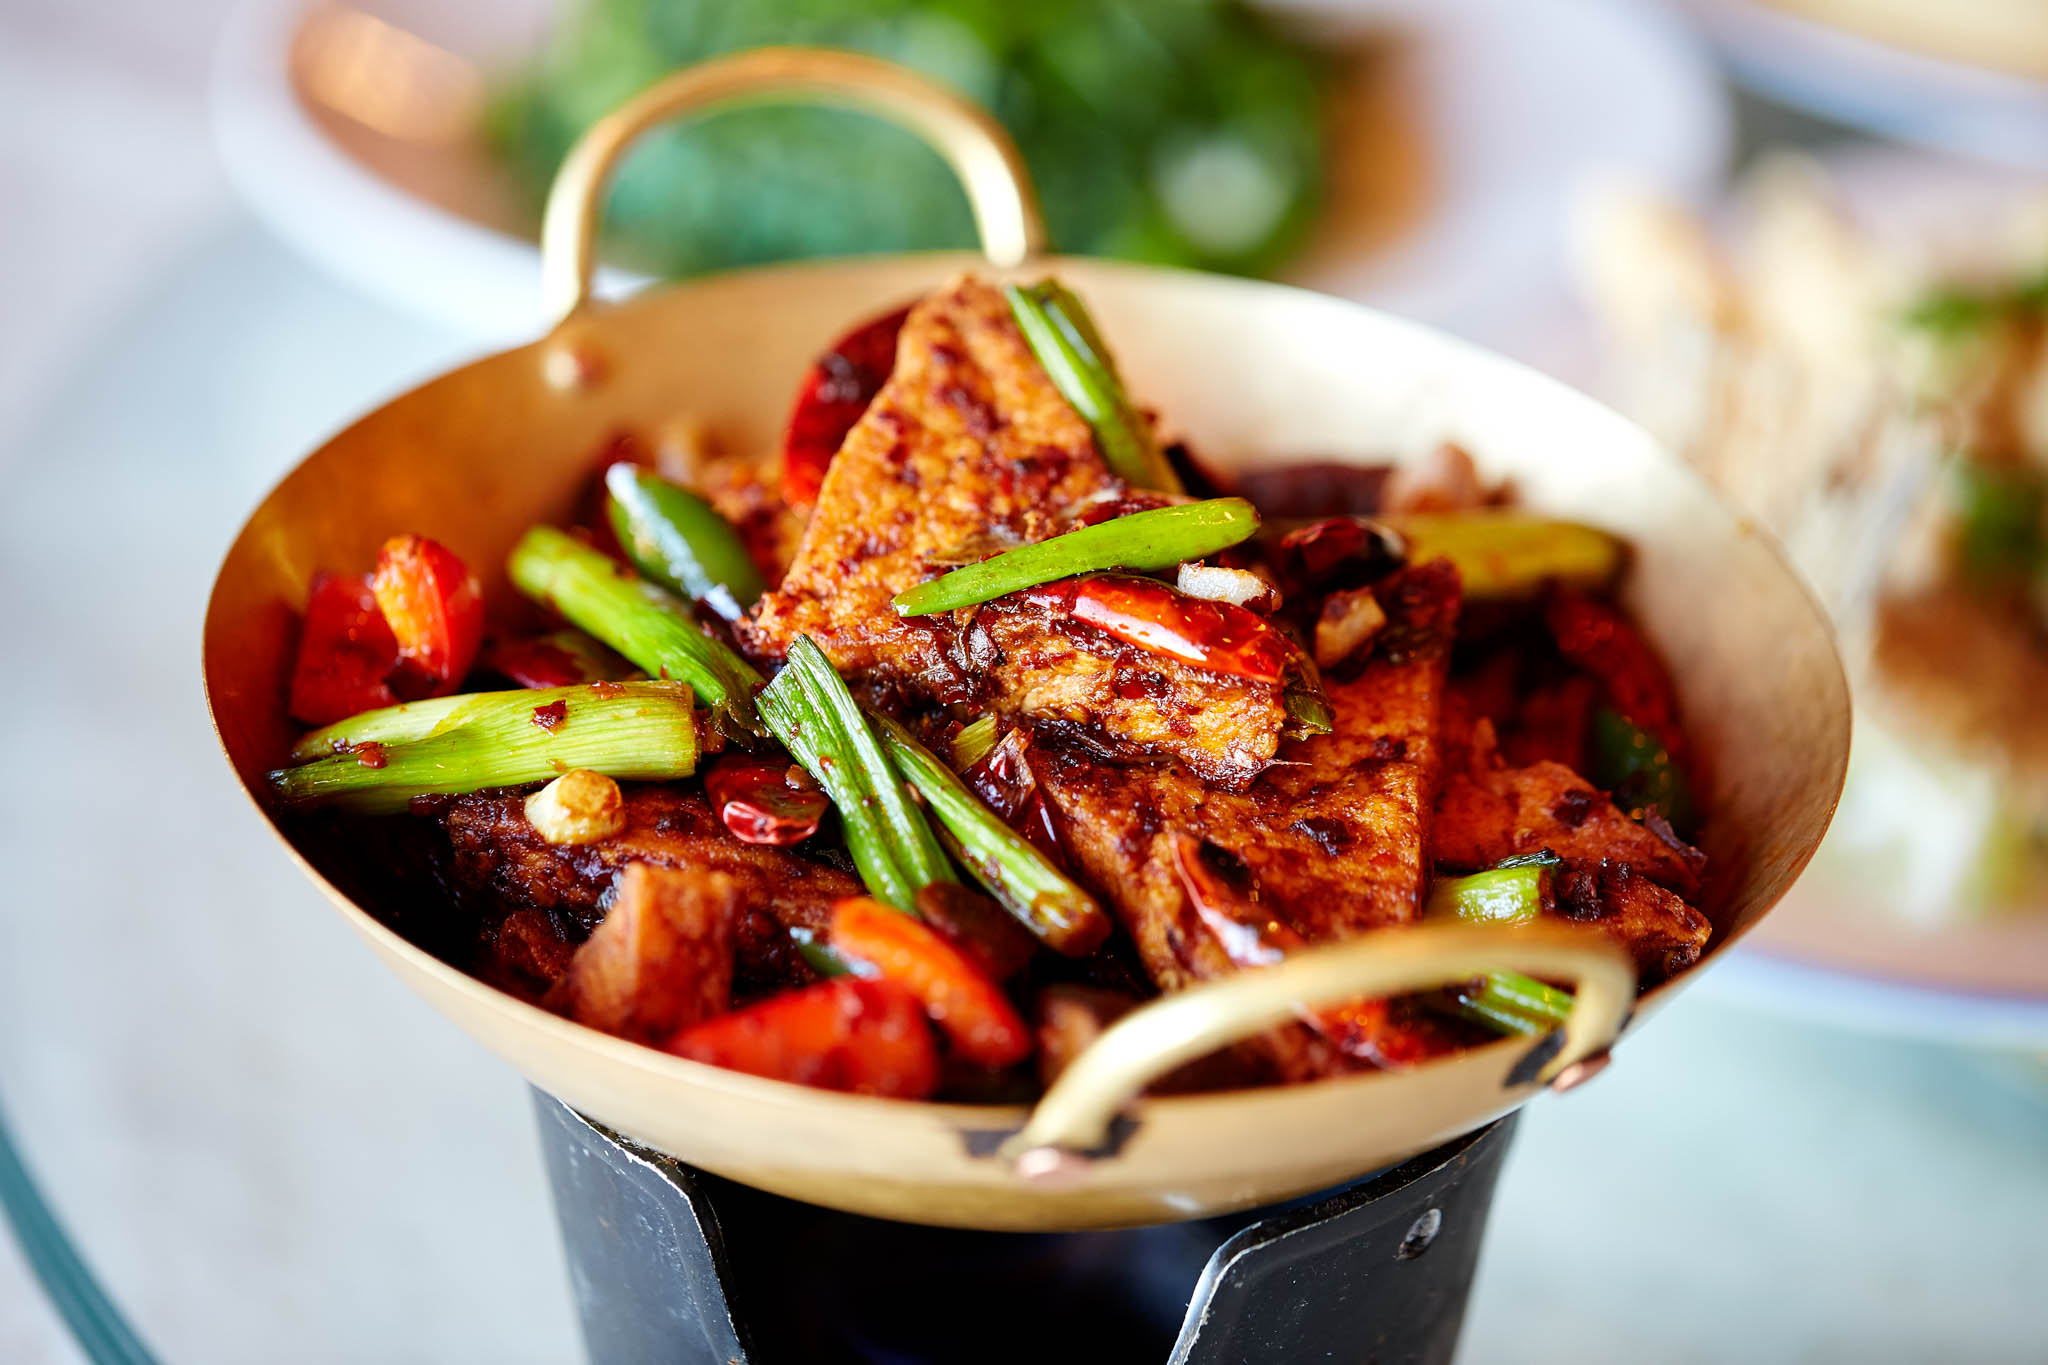 Hunan_Griddle_Tofu_with_Vegetables_1.jpg